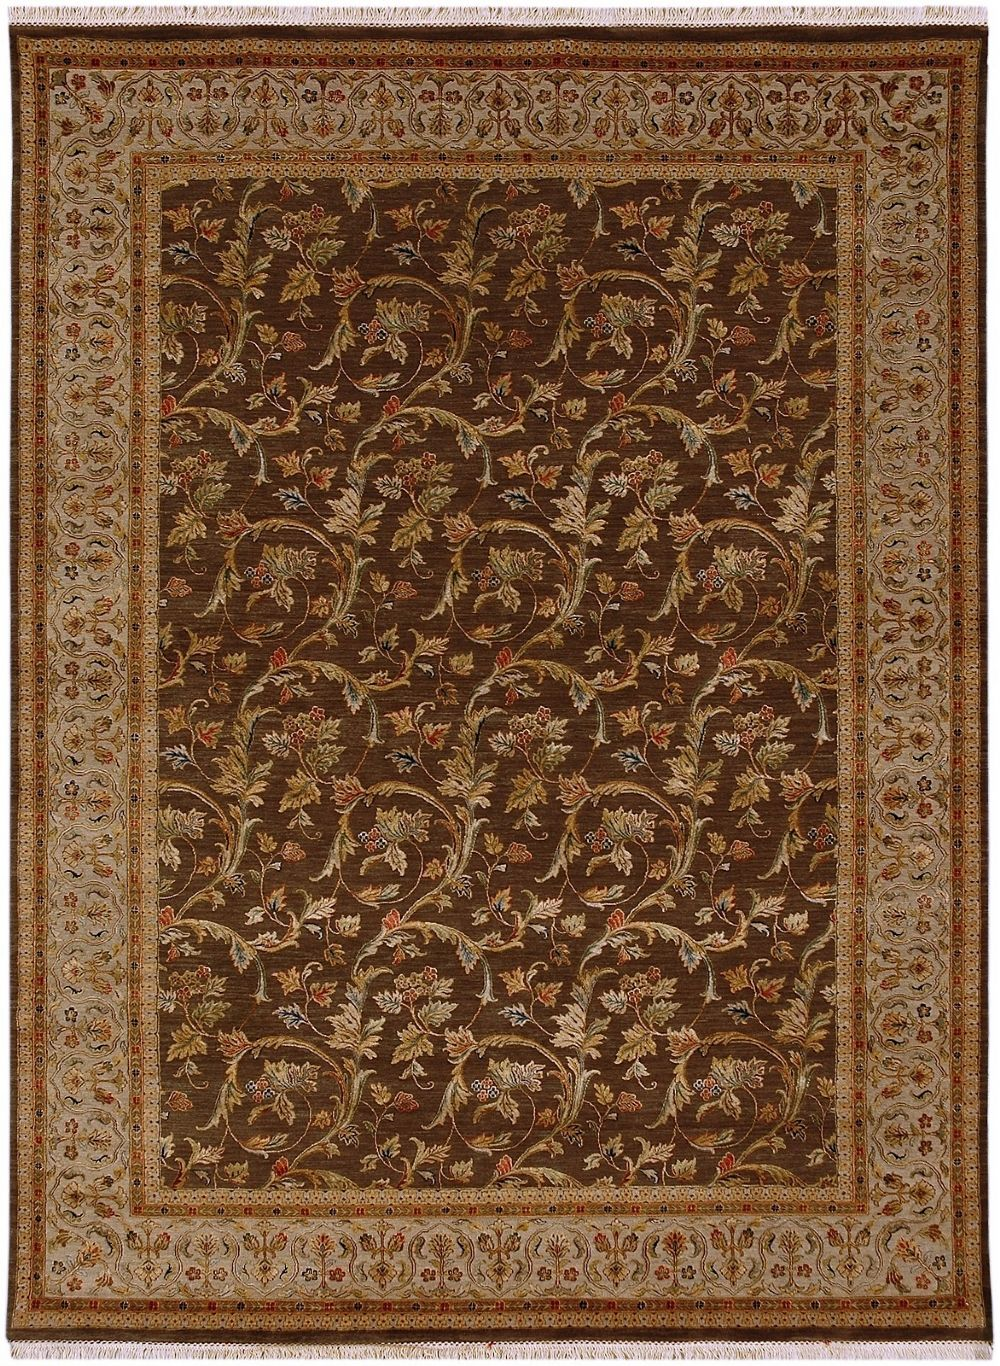 surya imperial traditional area rug collection